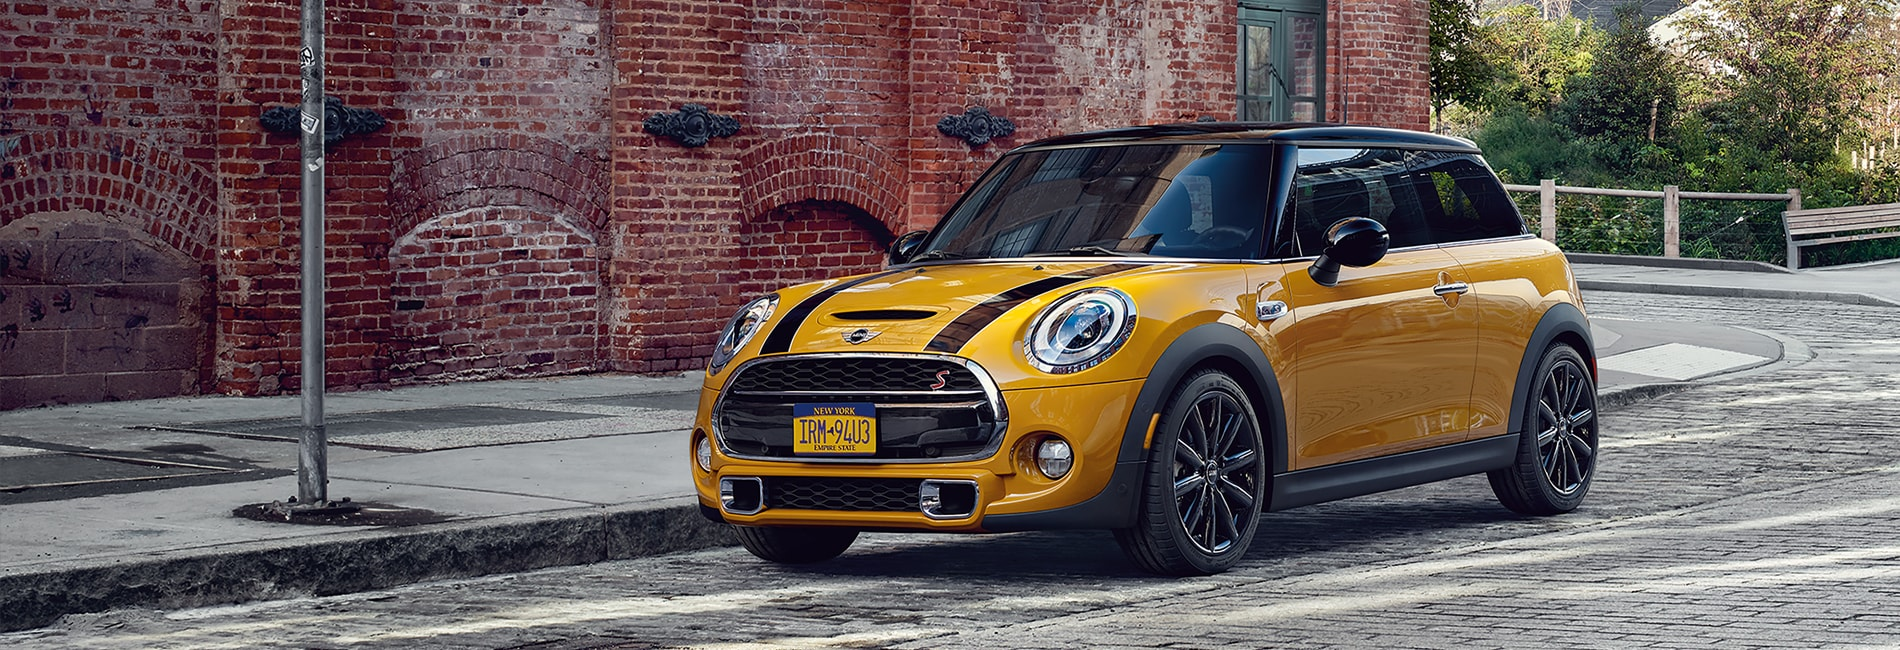 MINI Cooper Hardtop 2 Door Interior and Exterior Vehicle Features